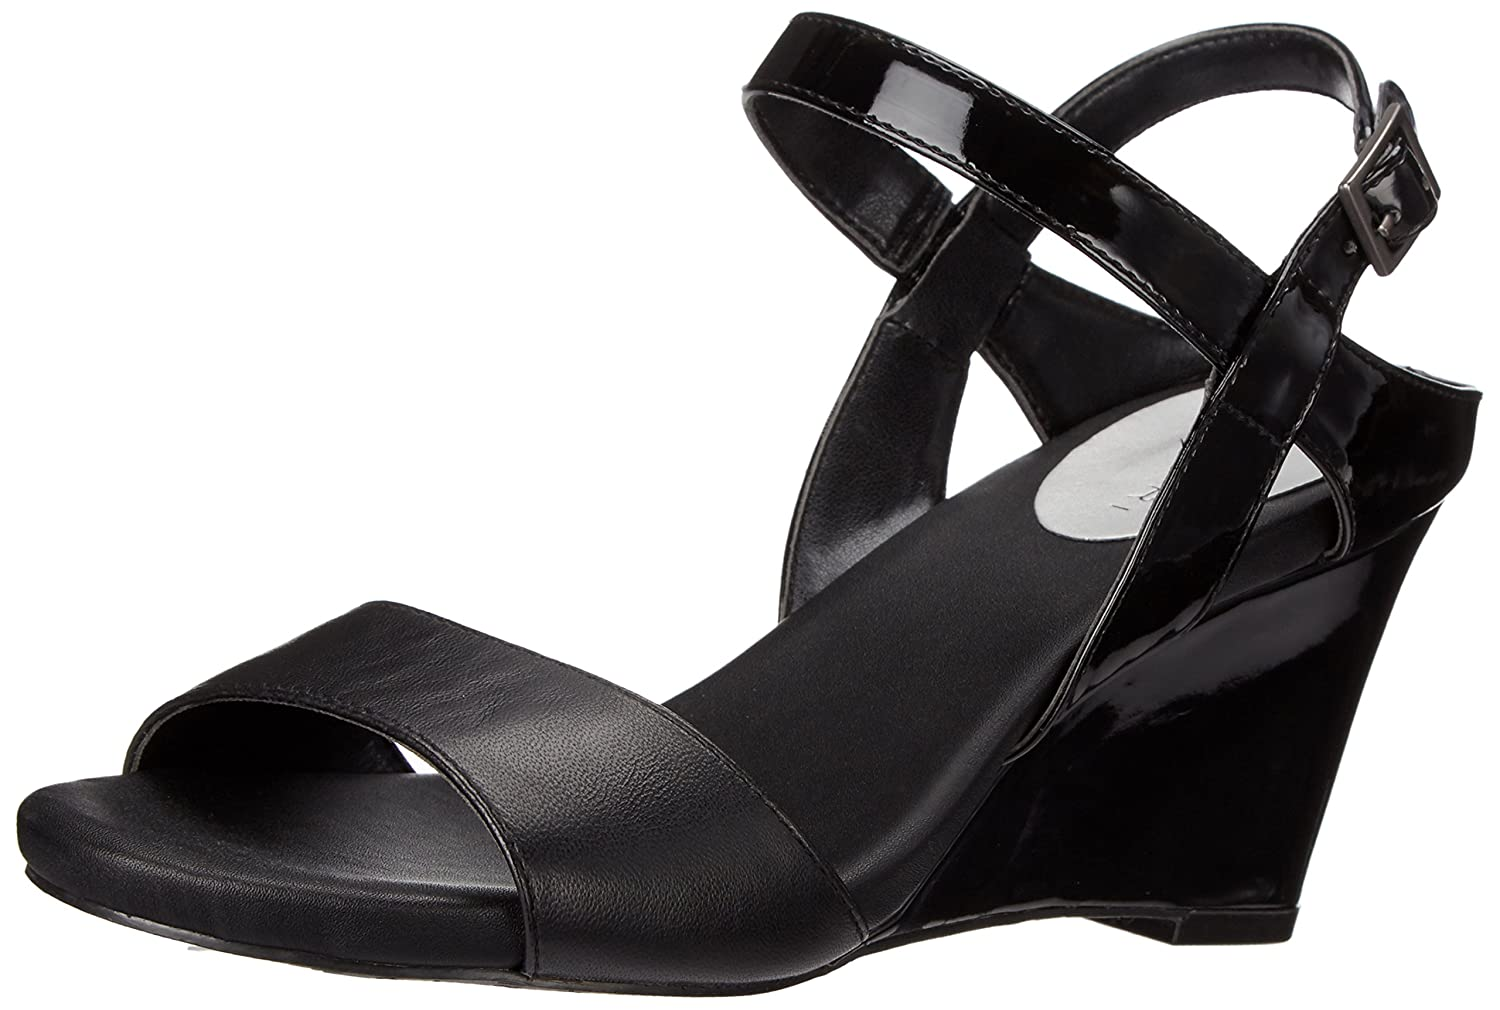 Tahari Women's TA-Fun Wedge Sandal B019DB1MU8 9.5 B(M) US|Black